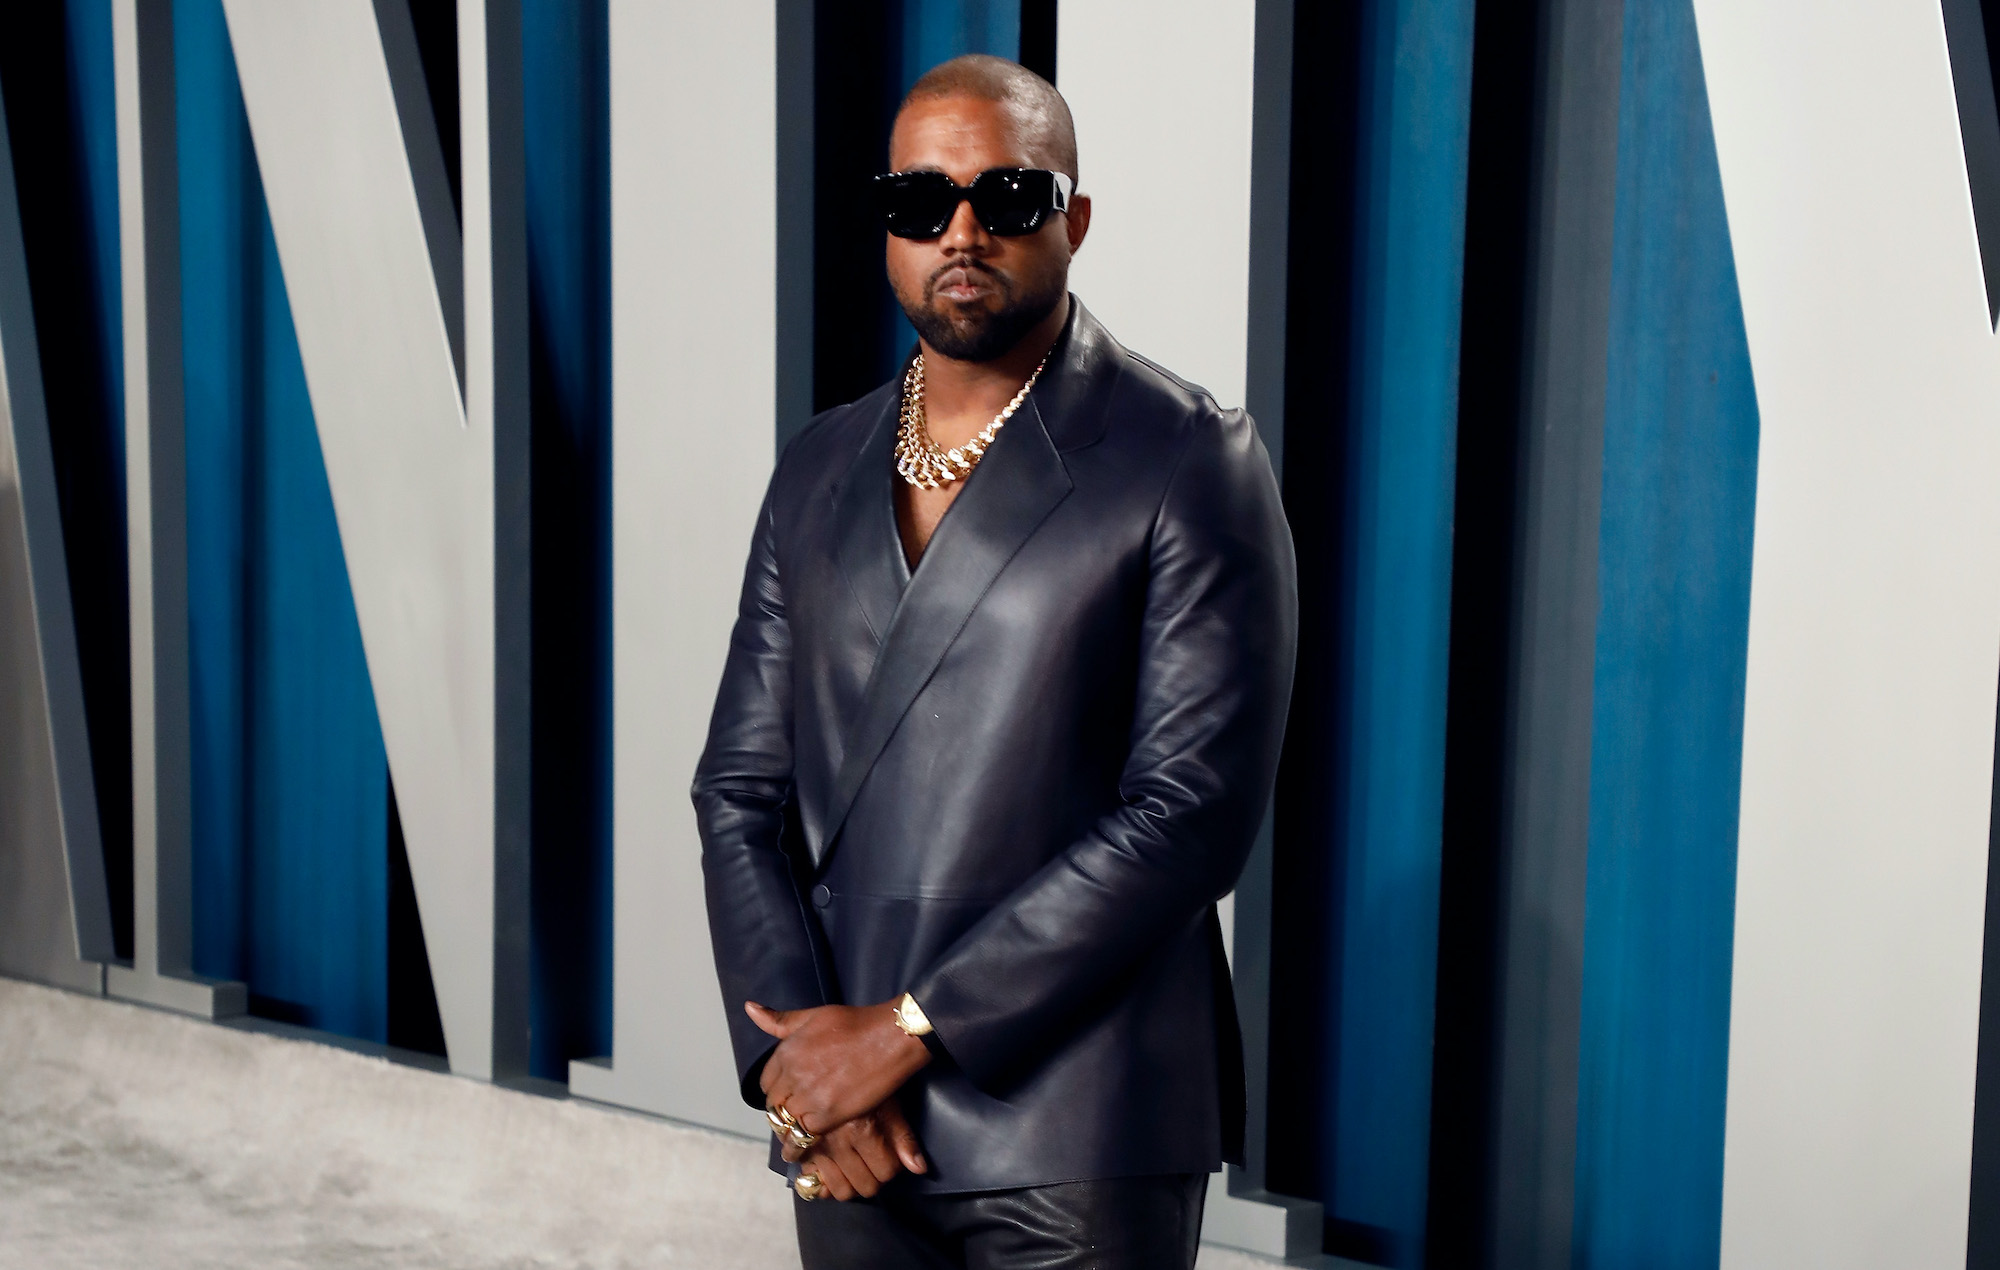 Cinematographer says Kanye West's new album is called 'God's Country' and new music is coming soon - EpicNews